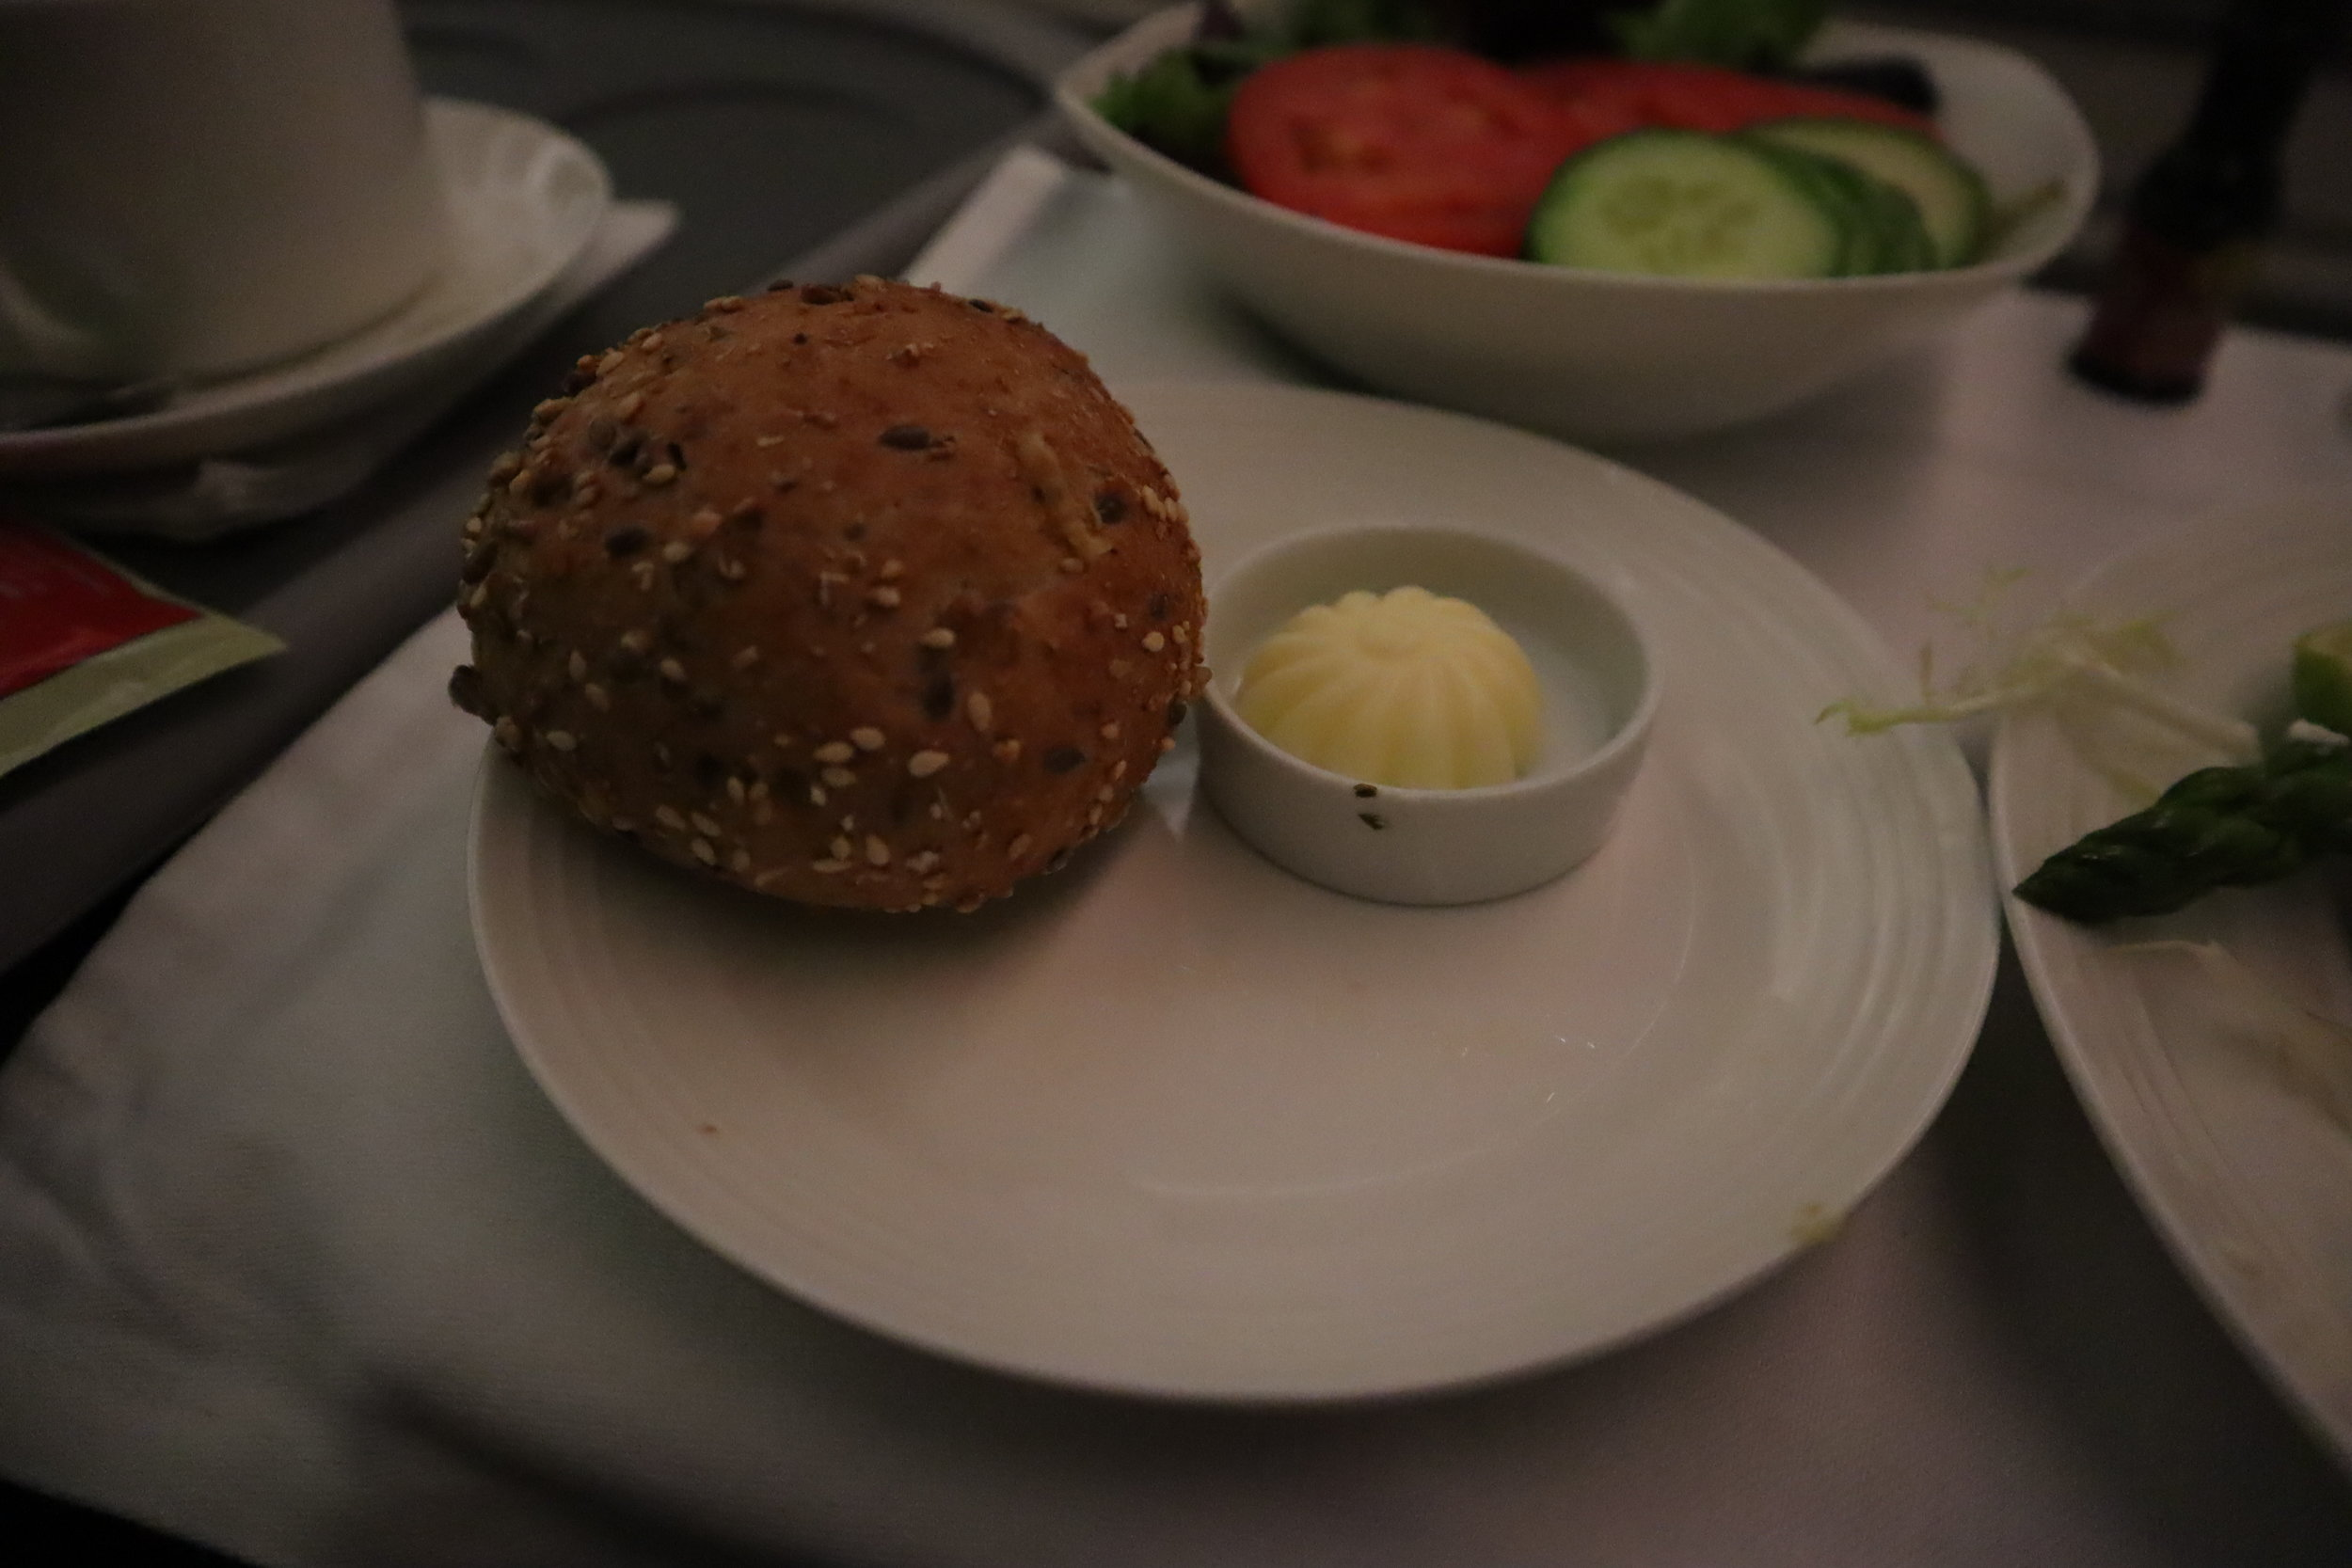 Ethiopian Airlines business class – Bread